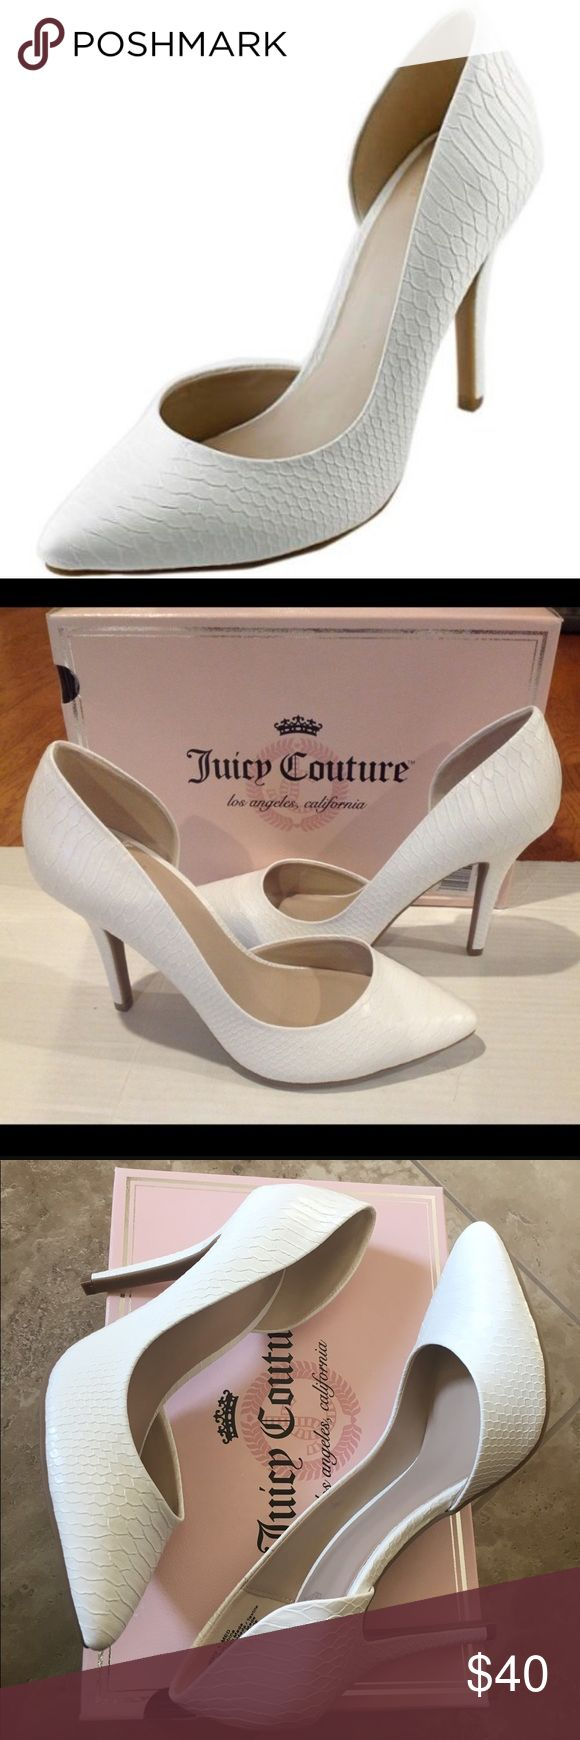 Juicy Couture Heels Dress to impress in these stylish women's Juicy Couture high heels. Faux-patent look. Pointed toe, Slip-on, lightly padded footbed 4-in. heel. Brand new in original box. Juicy Couture Shoes Heels